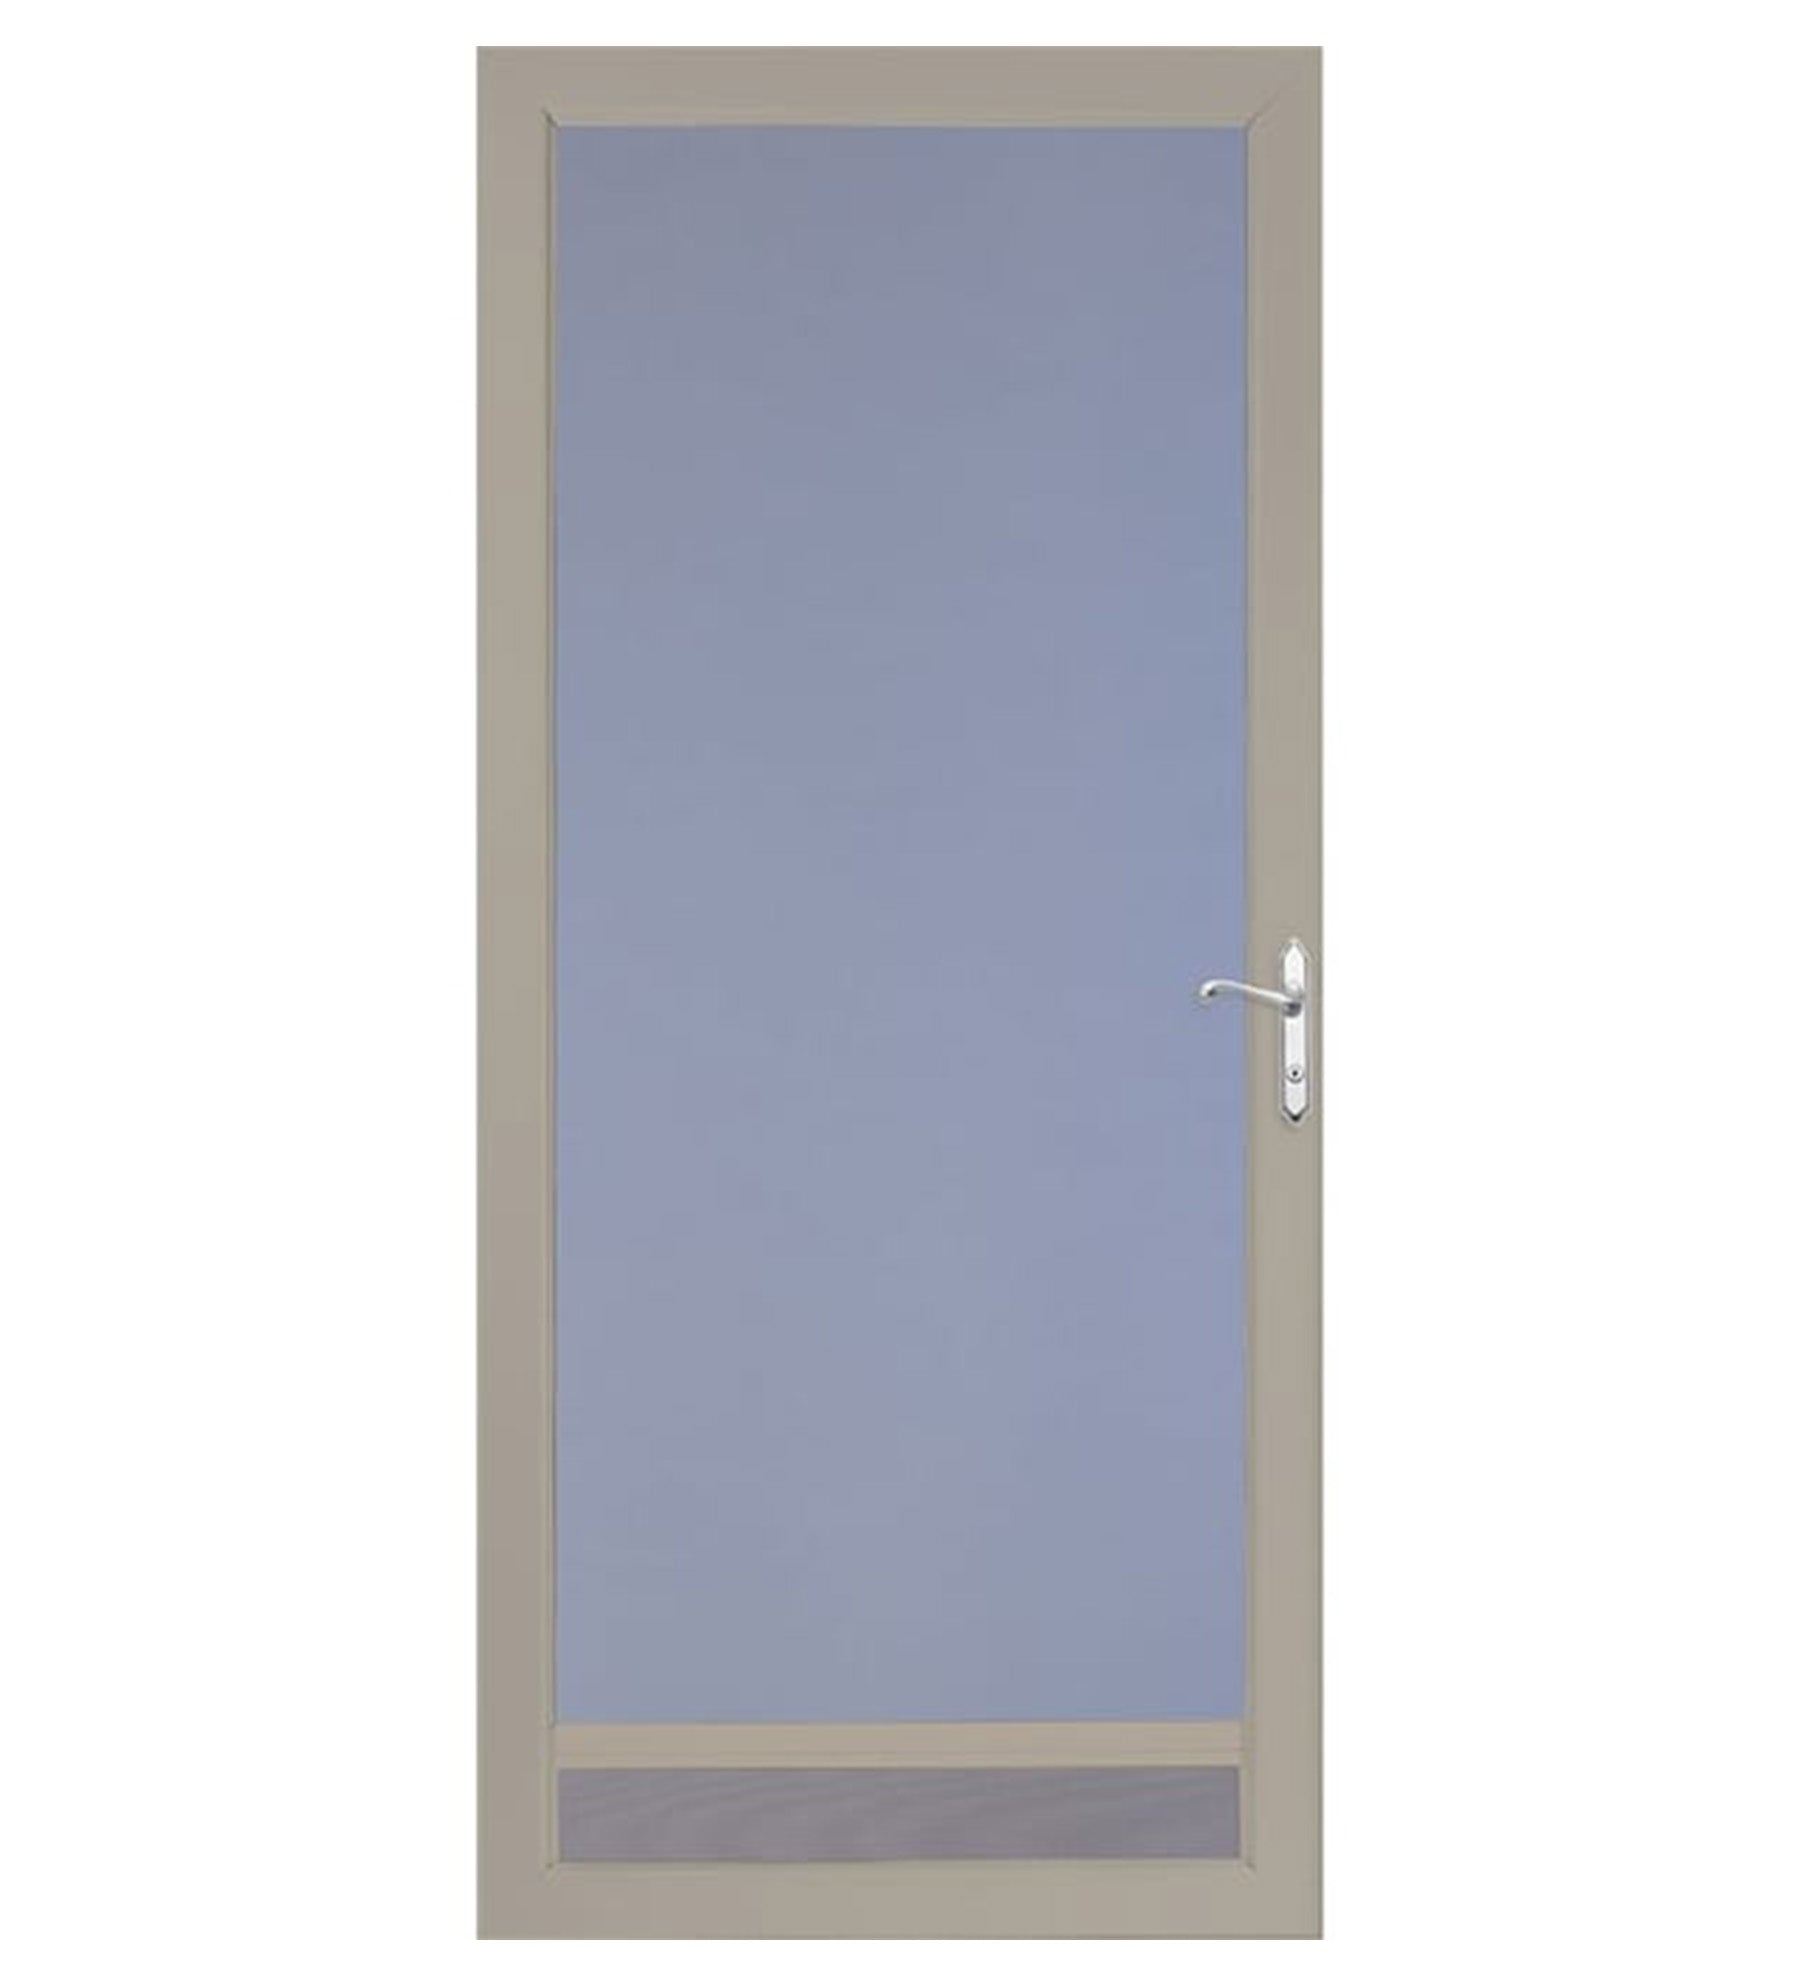 INSTALLED Larson Classic-View Bottom Vent Low-E Strom Door w/ Hardware           STARTING $481